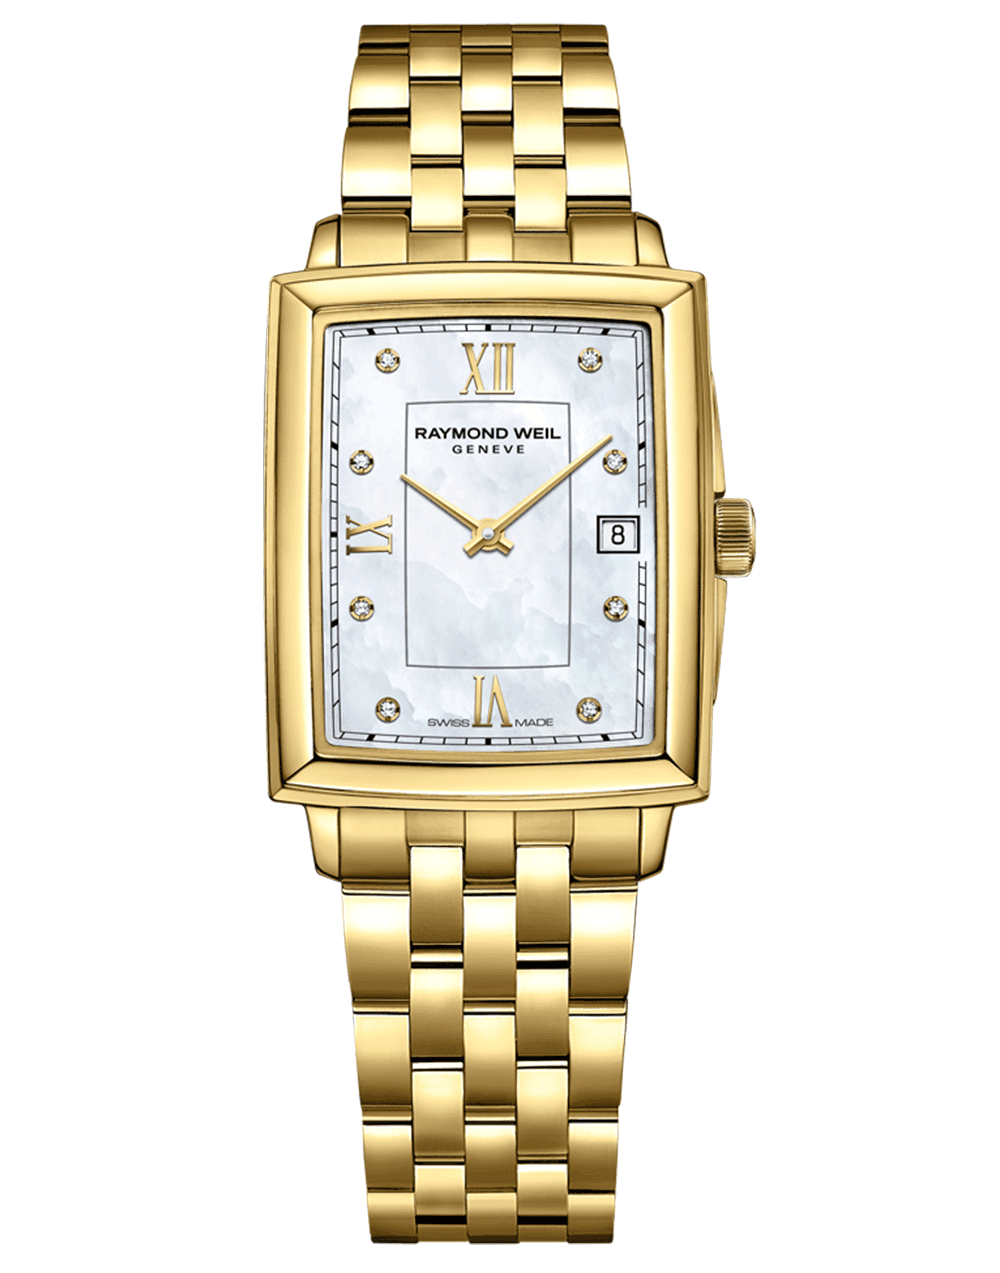 RAYMOND WEIL Toccata Square Gold Mother of Pearl Diamond Indexes Quartz Watch